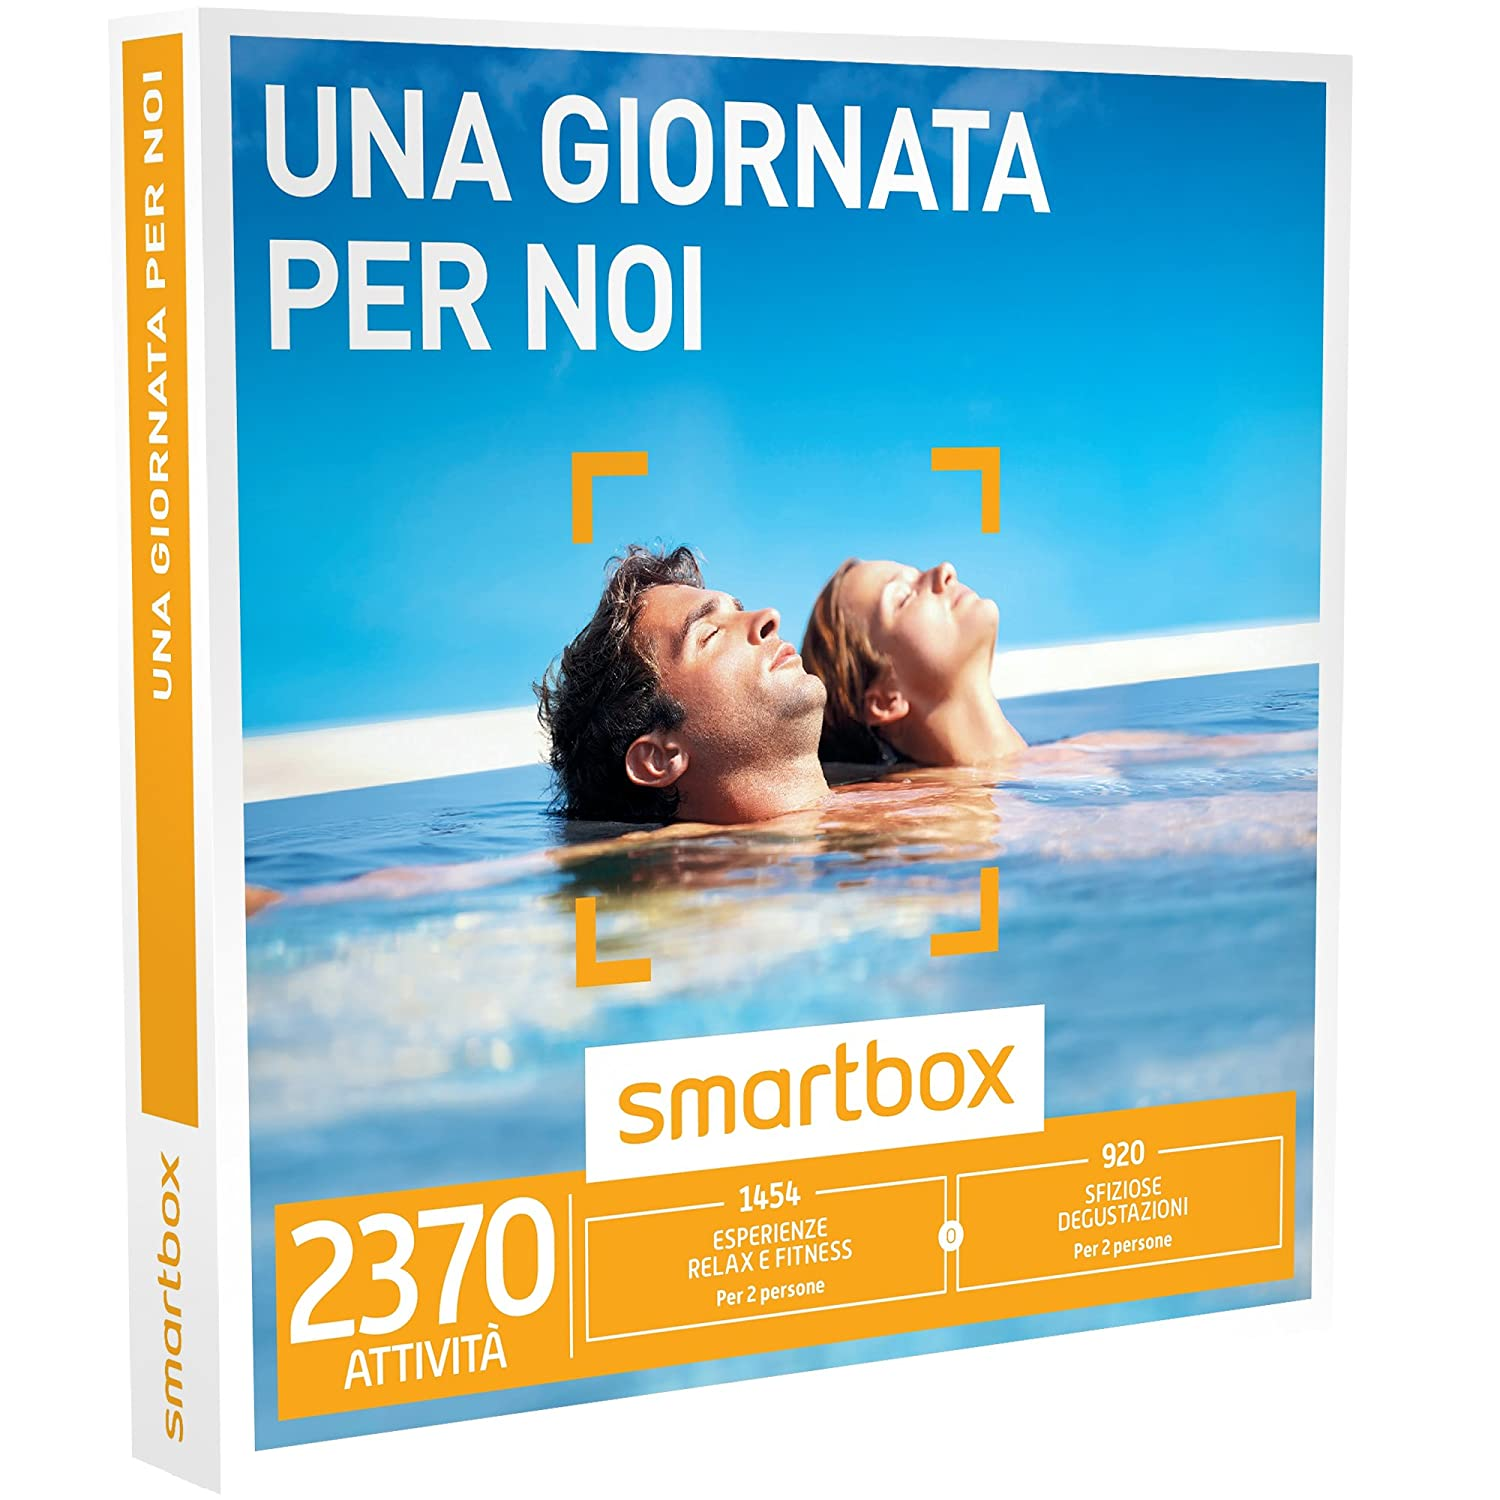 SMARTBOX - Cofanetto Regalo - ADDIO STRESS PER DUE - 1590 momenti ...